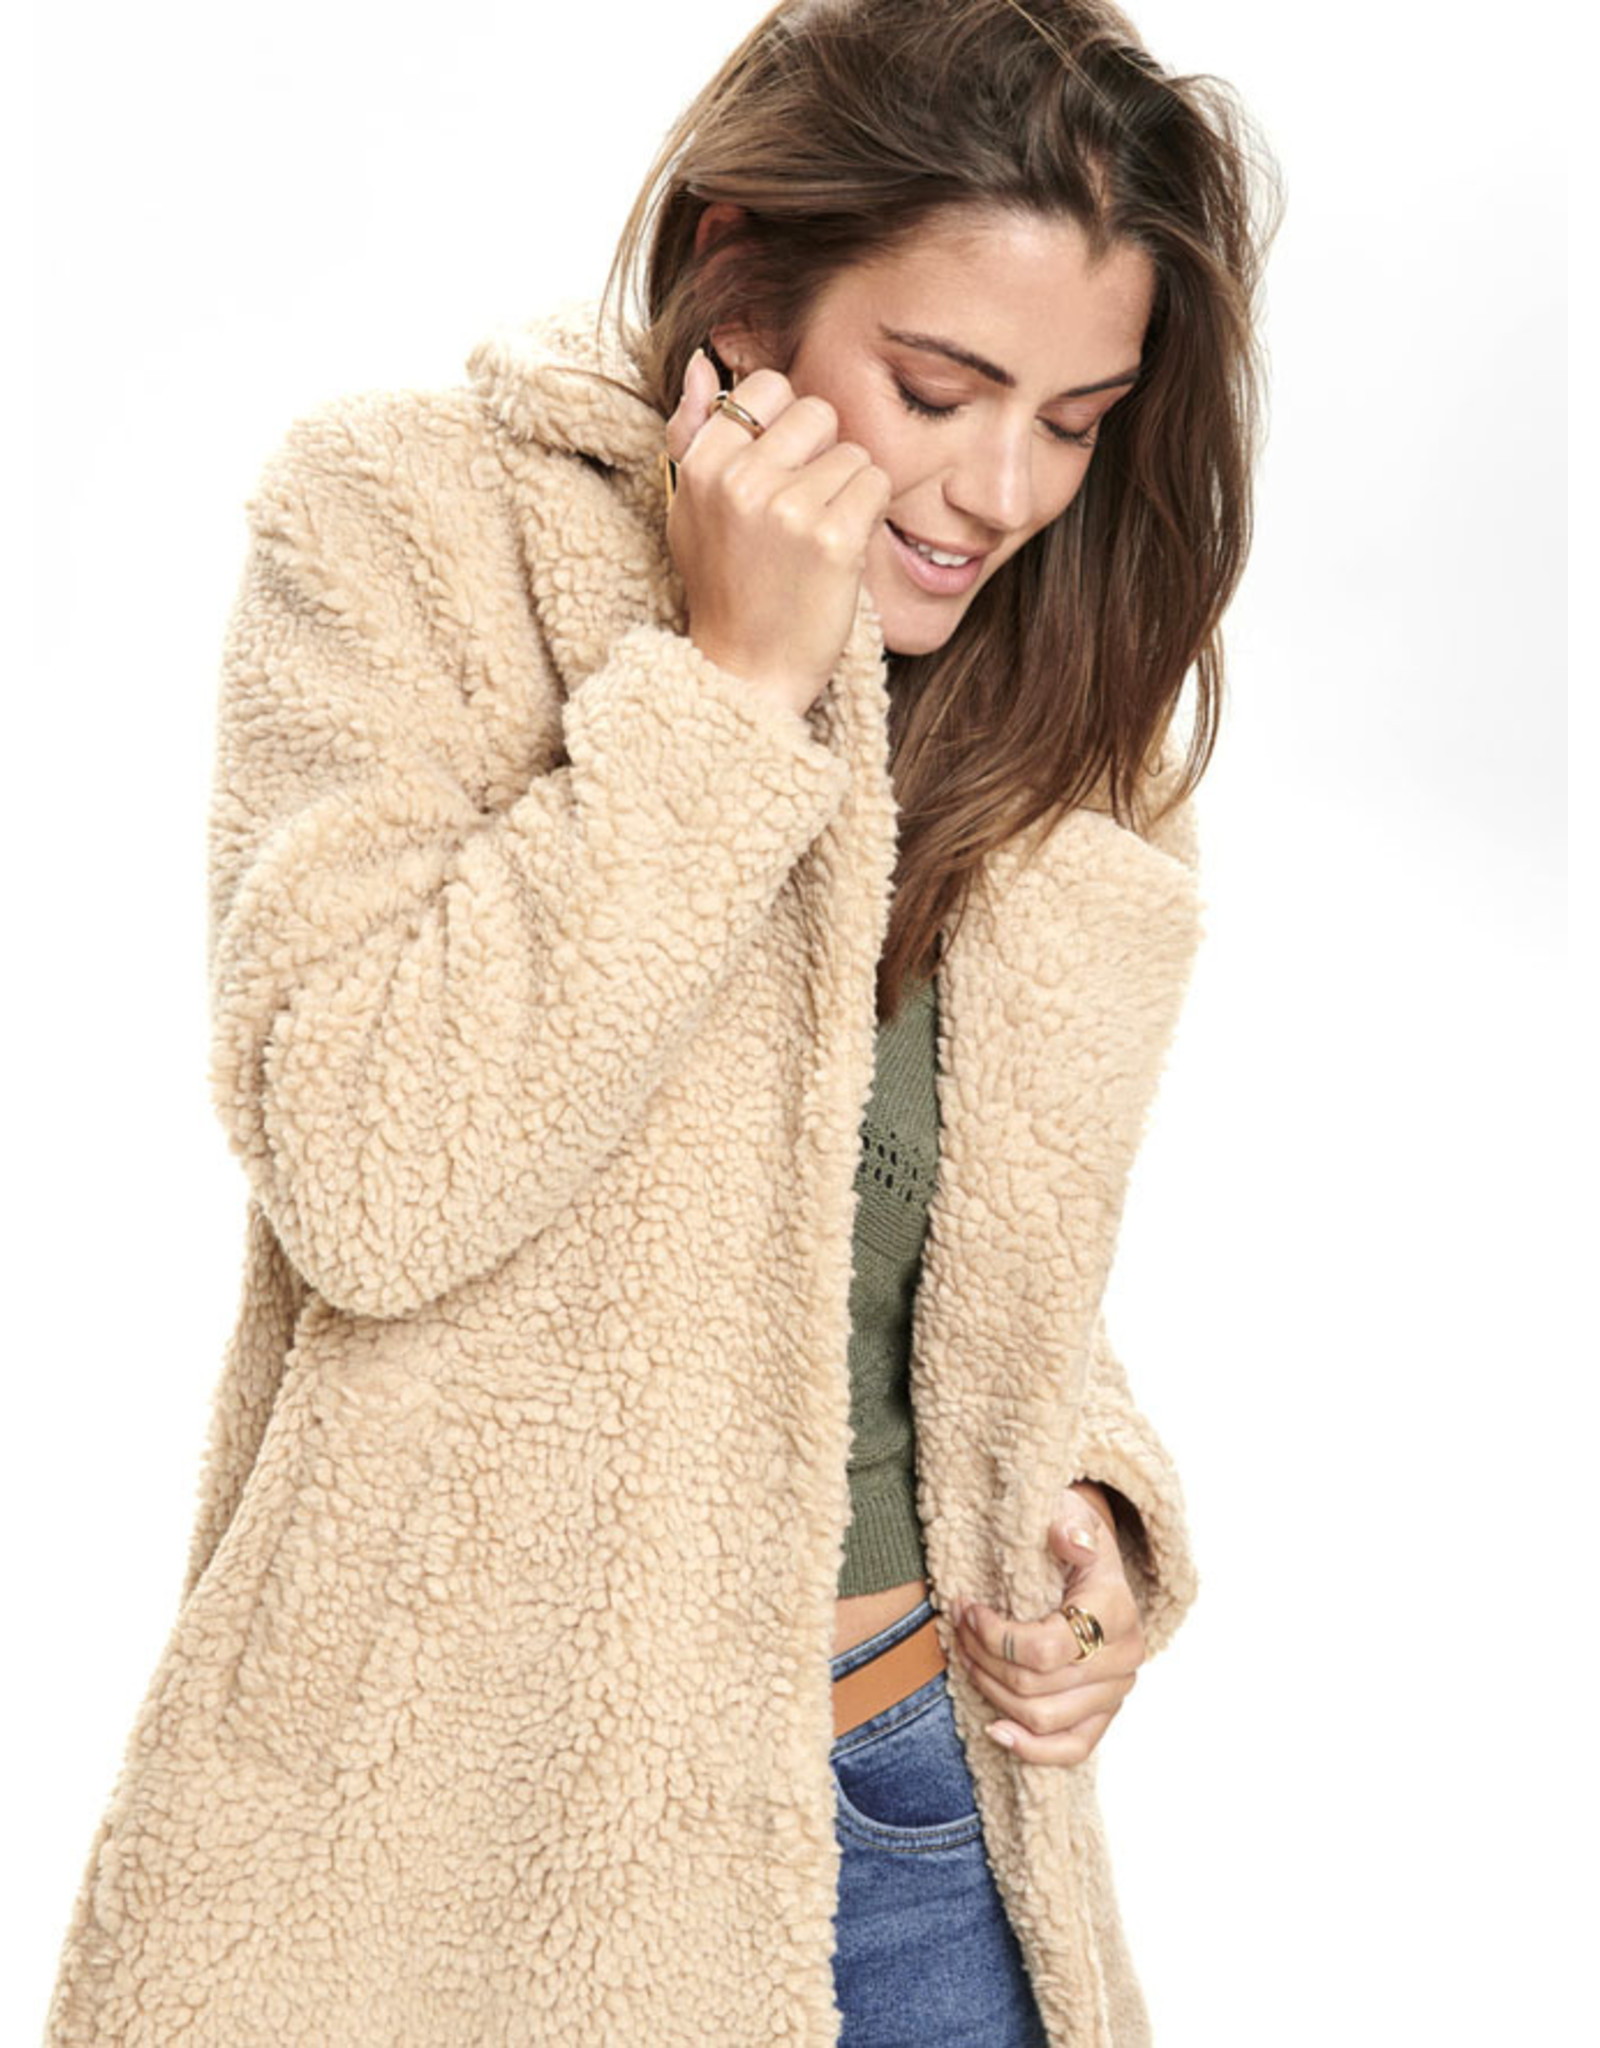 ONLY O. W19 SHERPA COAT SAND